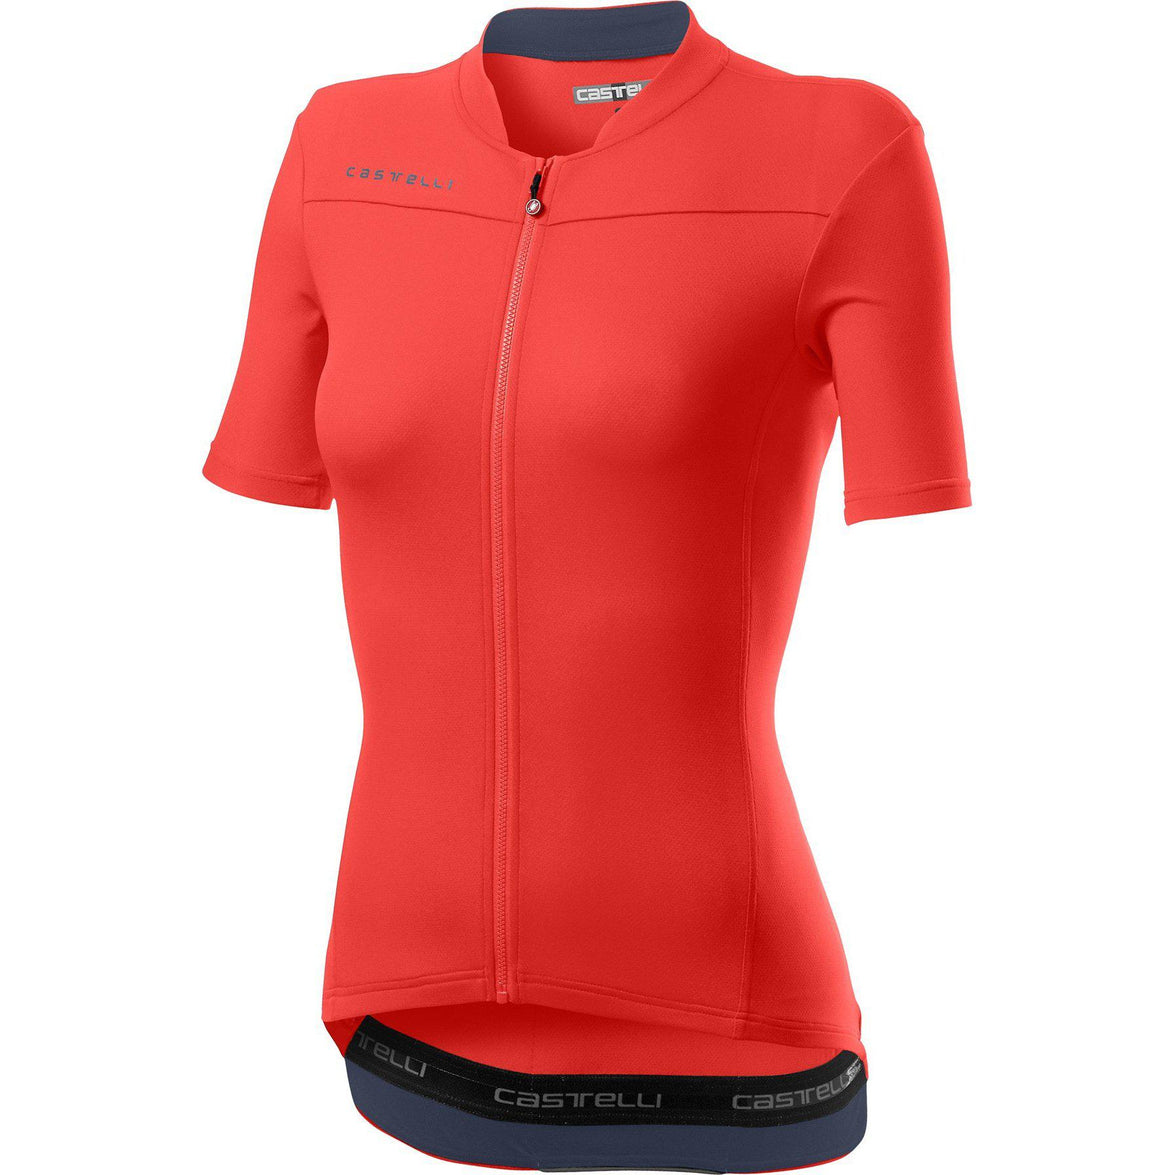 Castelli-Castelli Anima 3 Jersey-Brilliant Pink/Dark Steel Blue-XS-CS200682881-saddleback-elite-performance-cycling